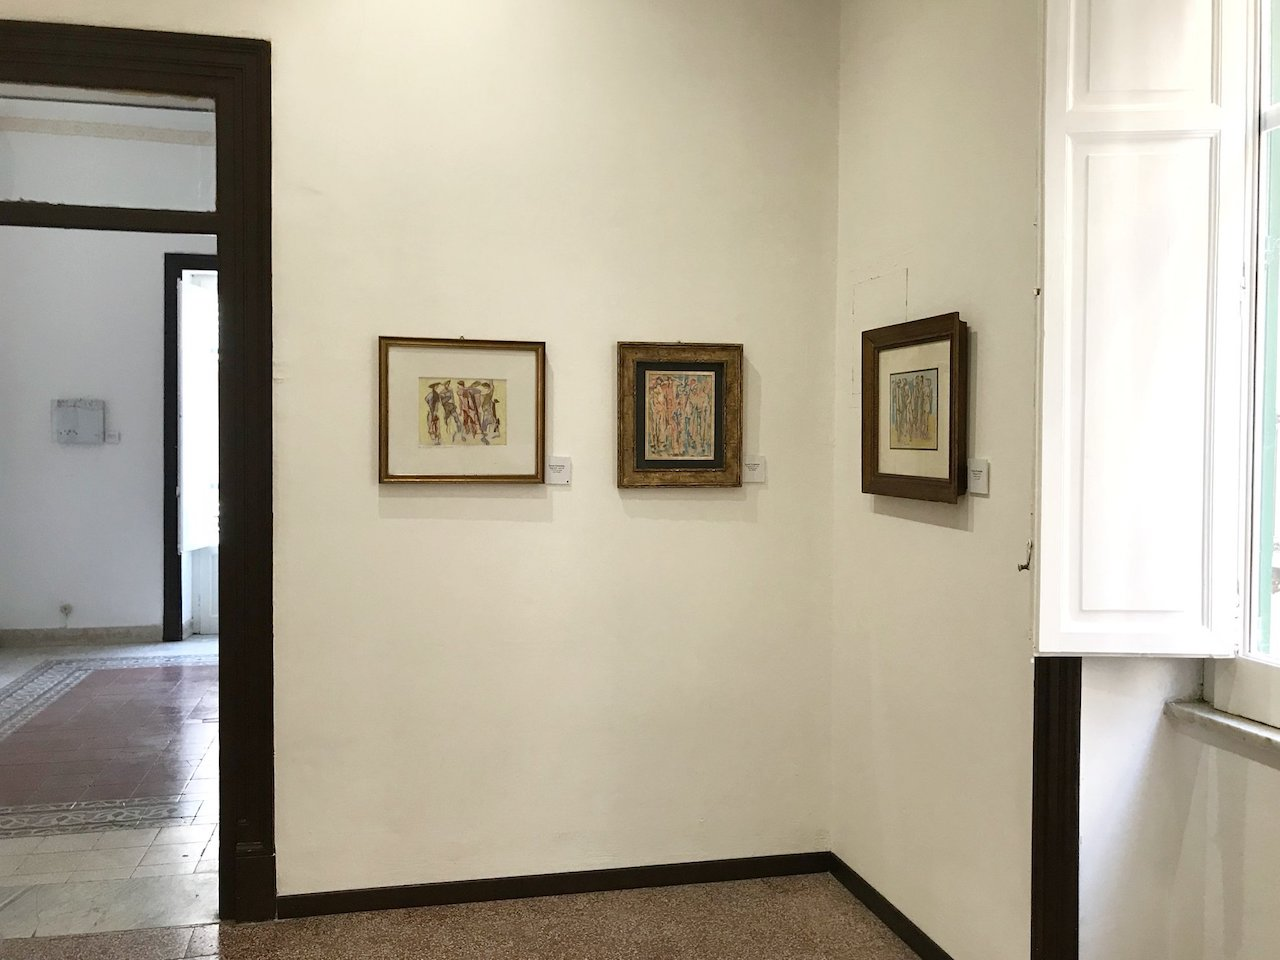 Galleria lombardi e la nica a palermo artribune for Sala pirandello